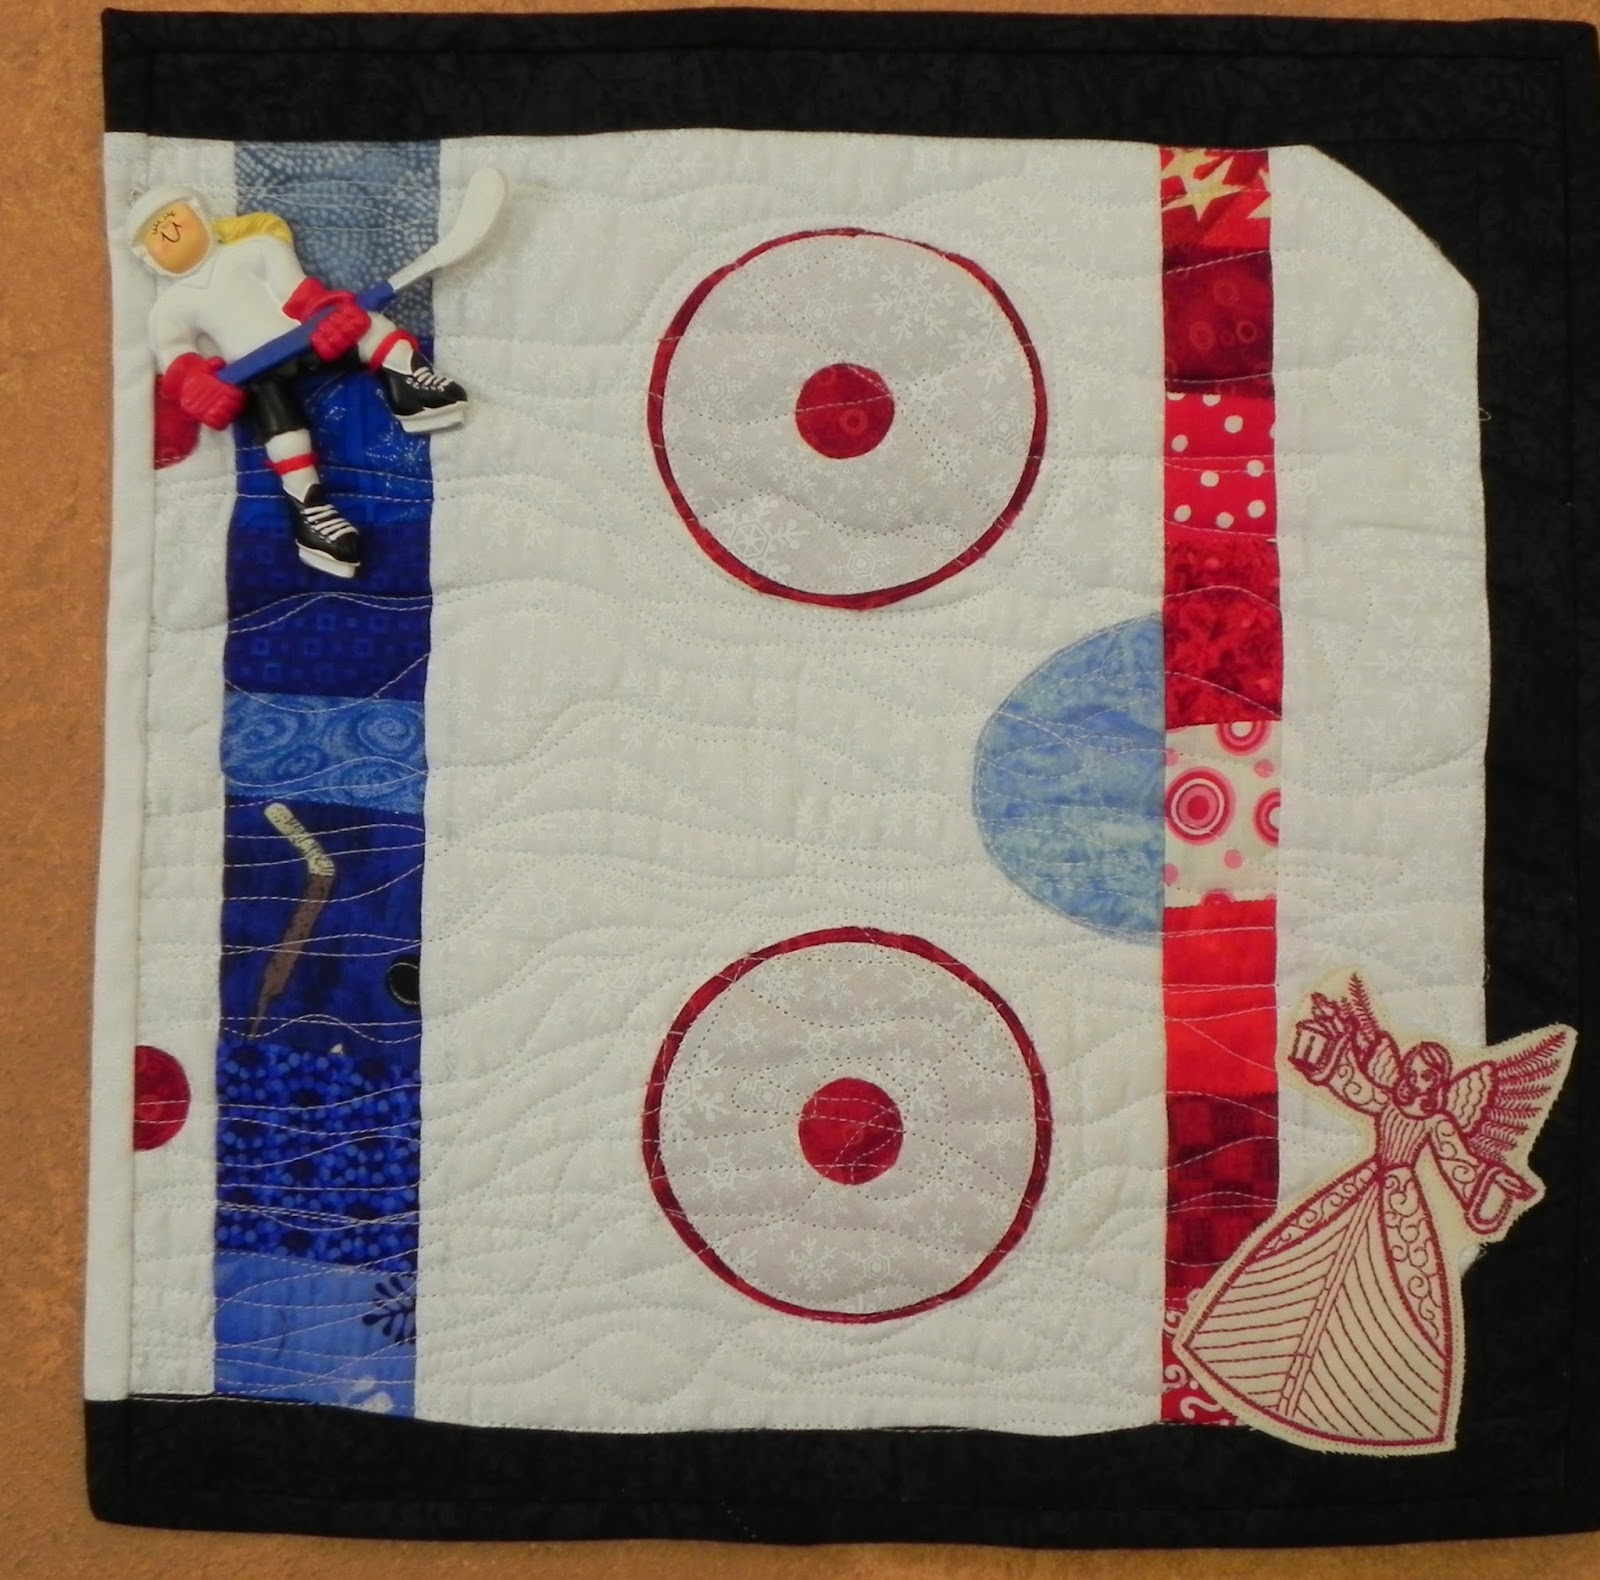 hockey rink diagram great white shark anatomy bell creek quilts: my angel of light quilt...hockey style